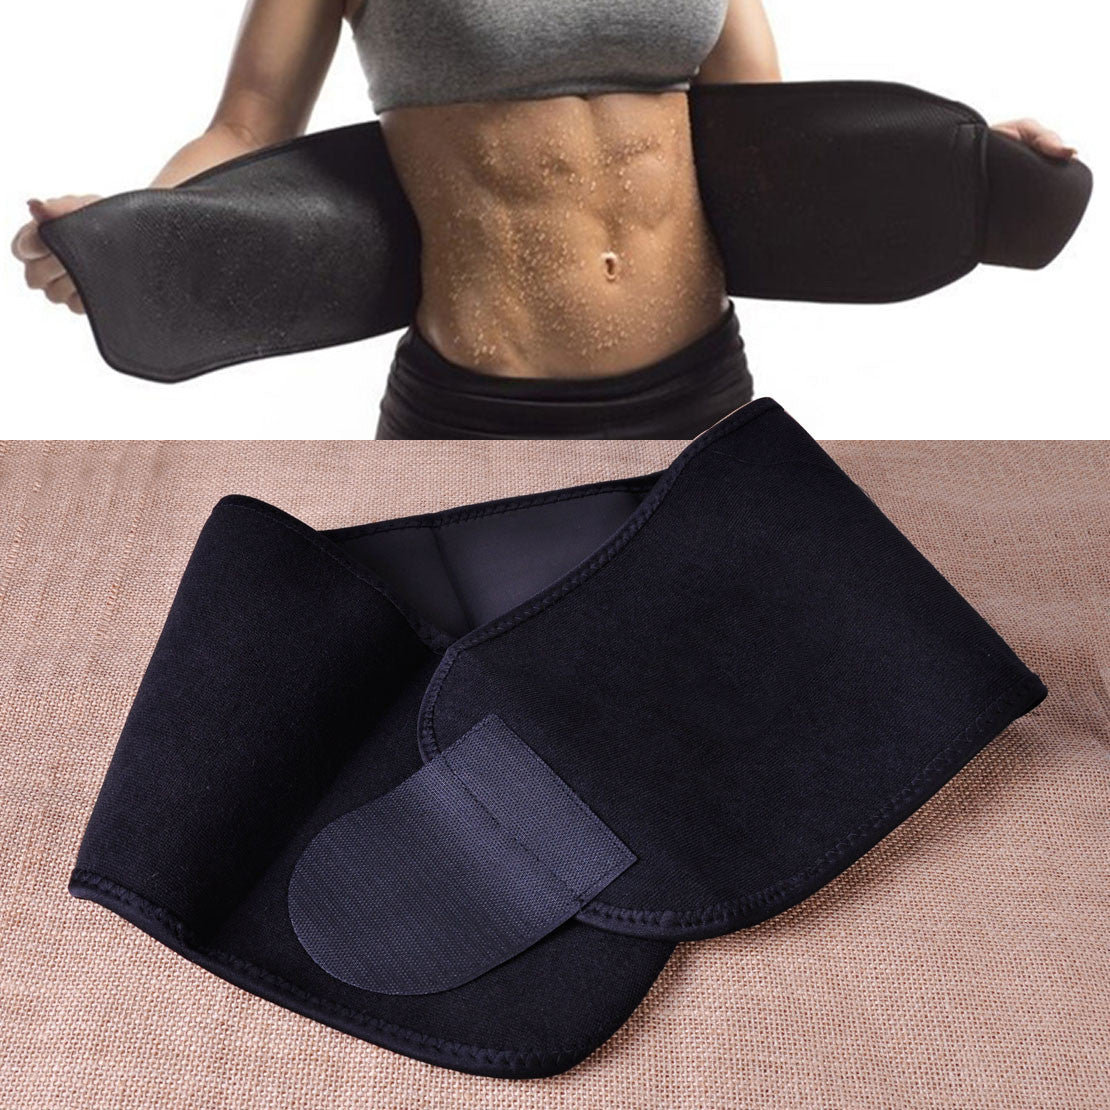 Neoprene Waist Trimmer Ab Slimming Belt